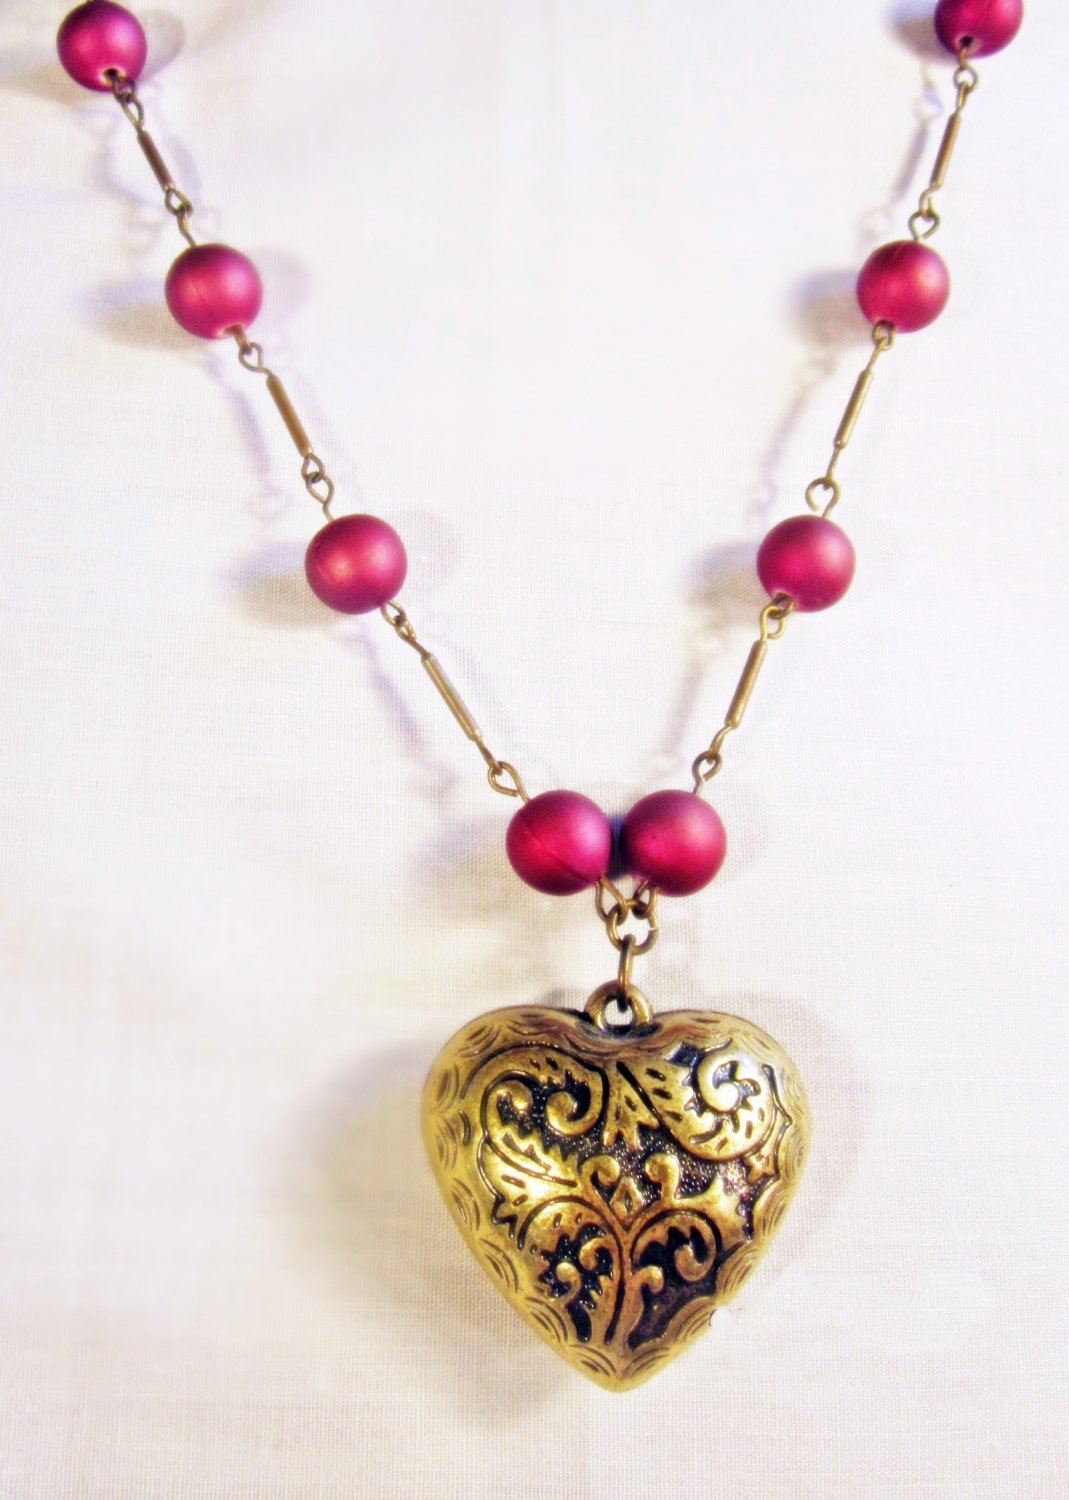 N1 - Purple beaded necklace with heart pendant